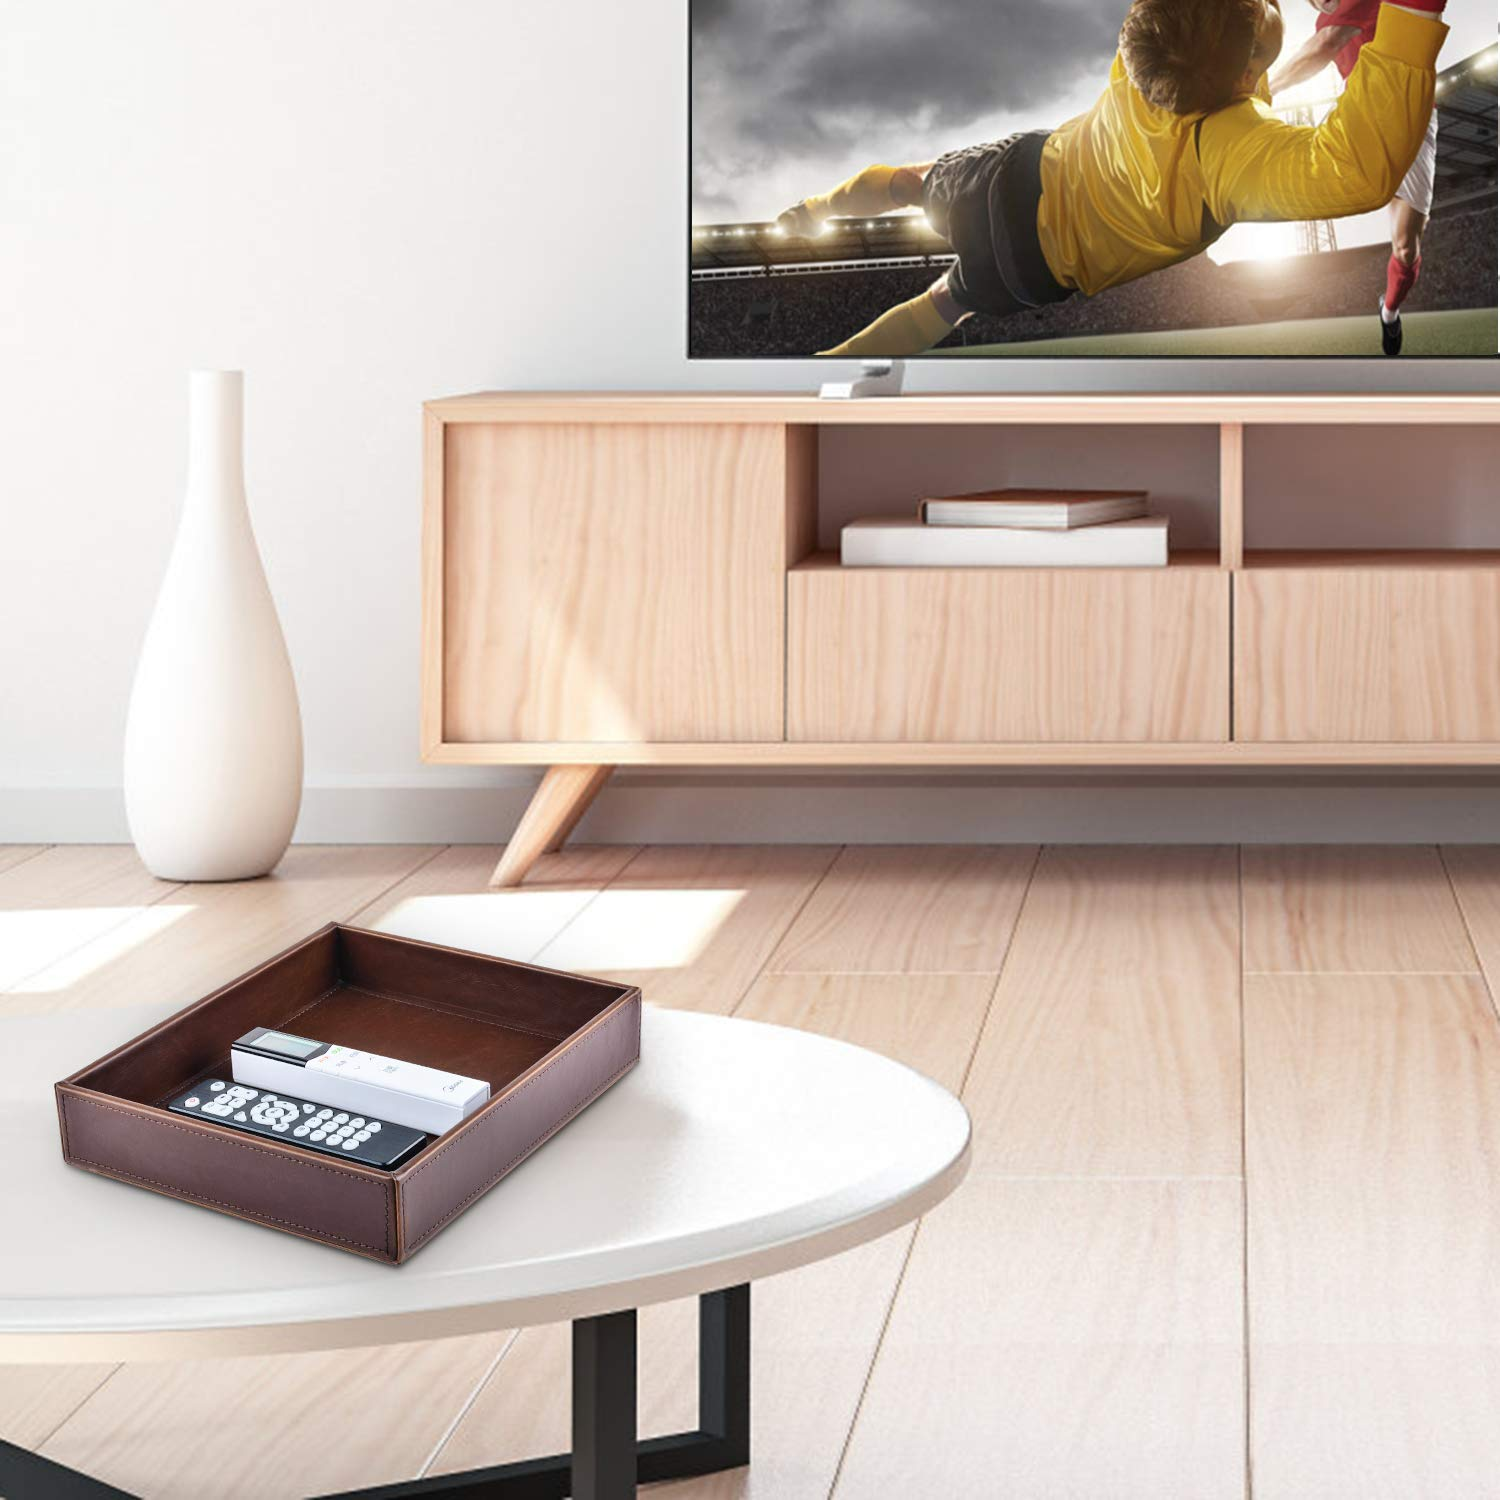 Decor Trends Brown 10.2x8.3 Rectangle Vintage Leather Decorative Office Desktop Storage Catchall Tray,Valet Tray,Nightstand Dresser Key Tray